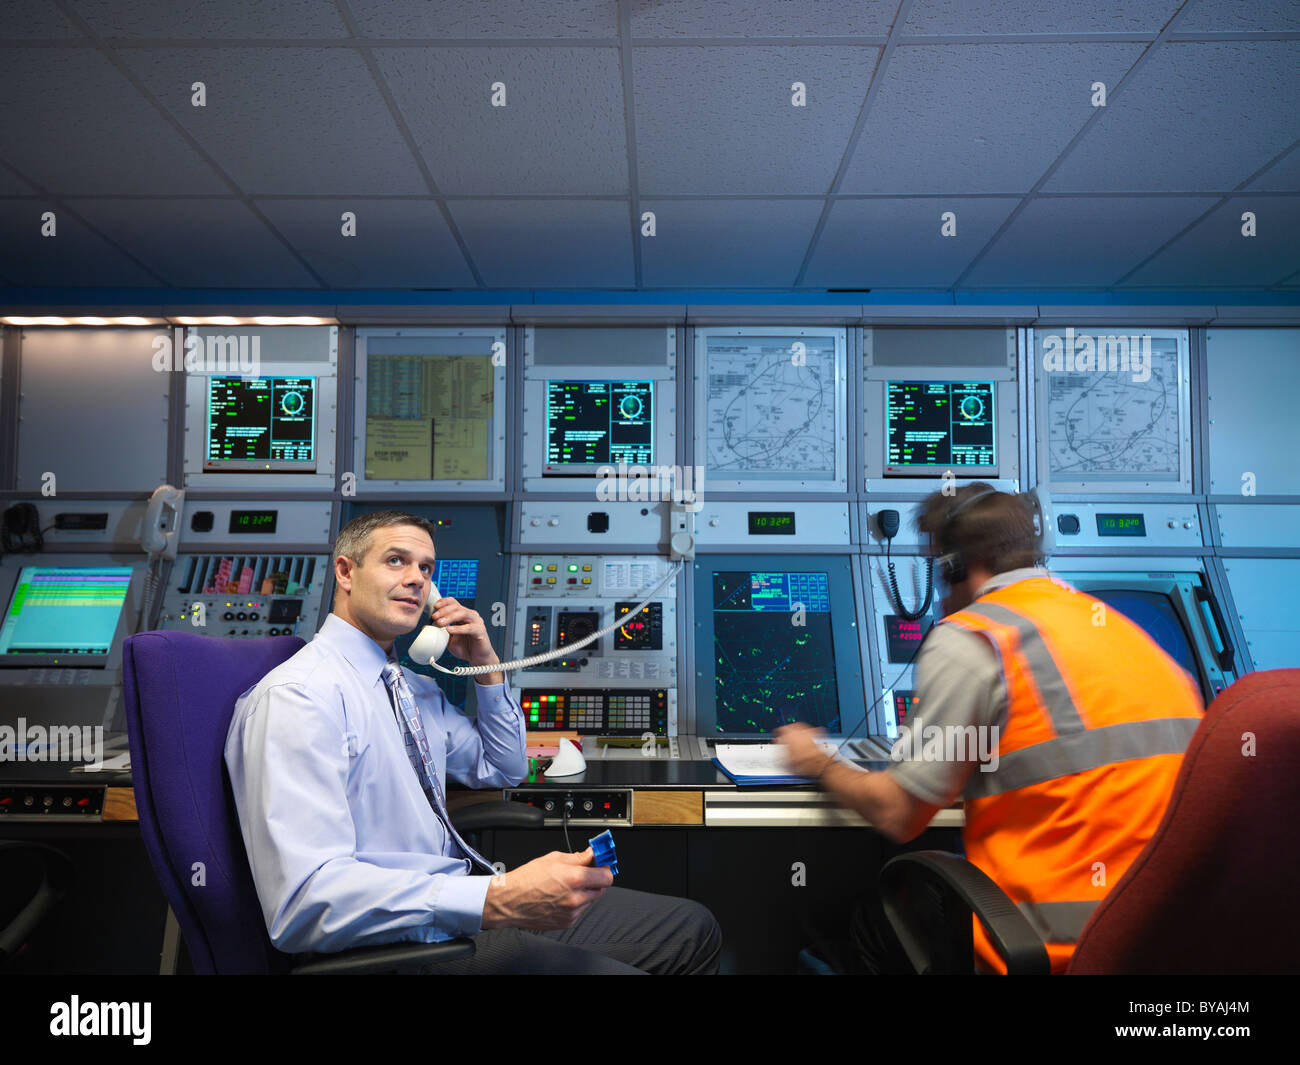 Air traffic controllers in radar room - Stock Image